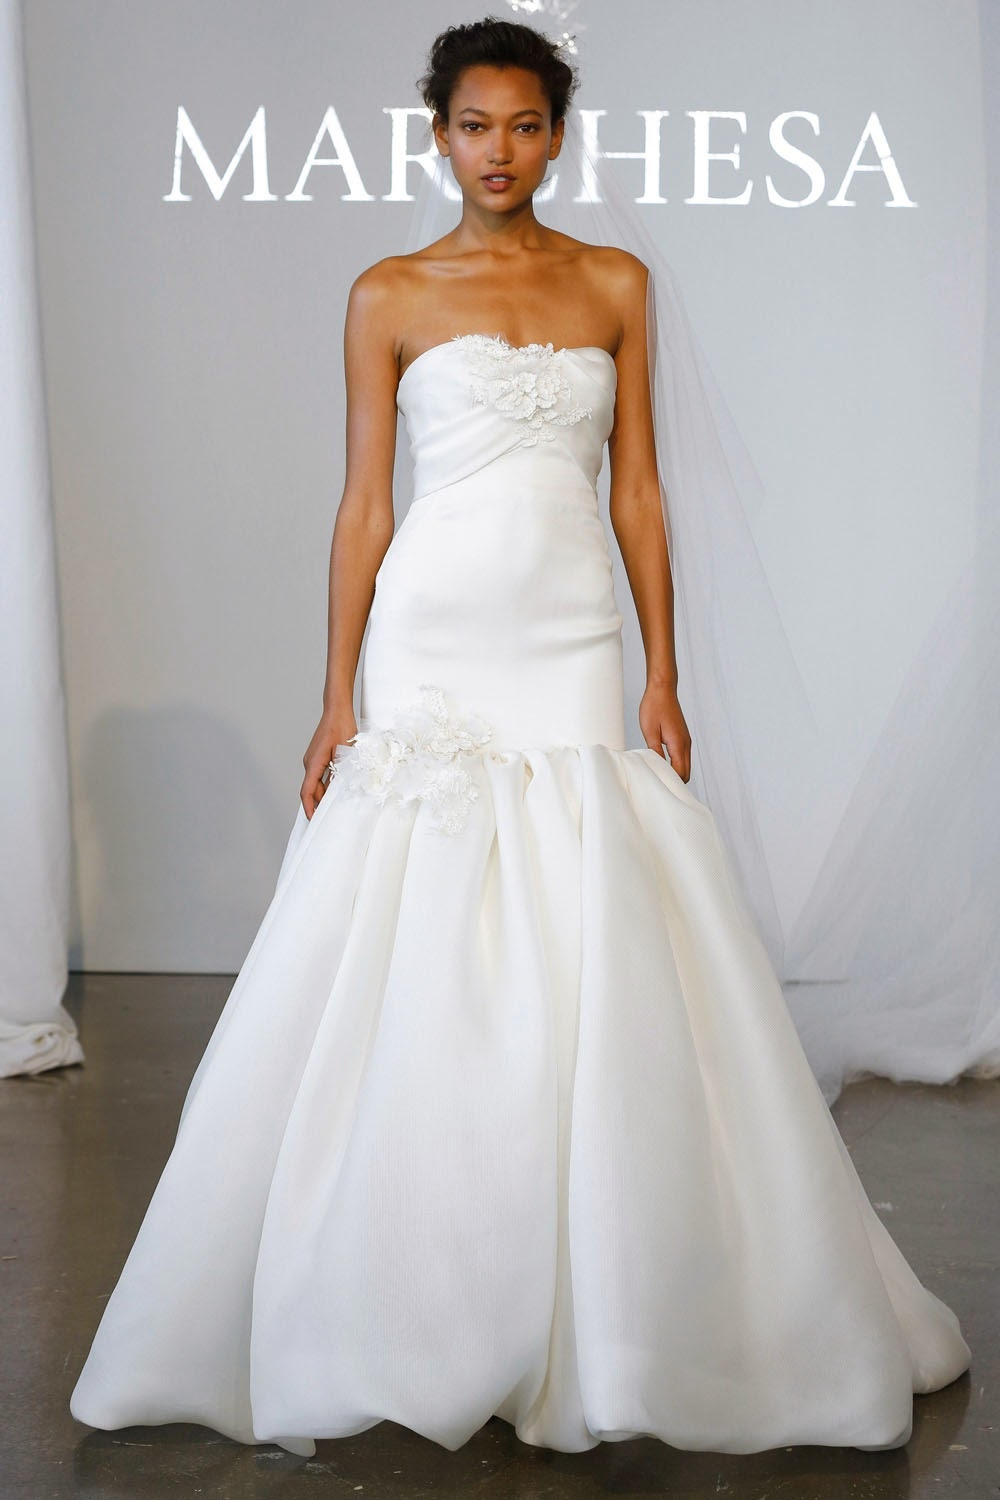 Marchesa Spring 2015 Wedding Dresses